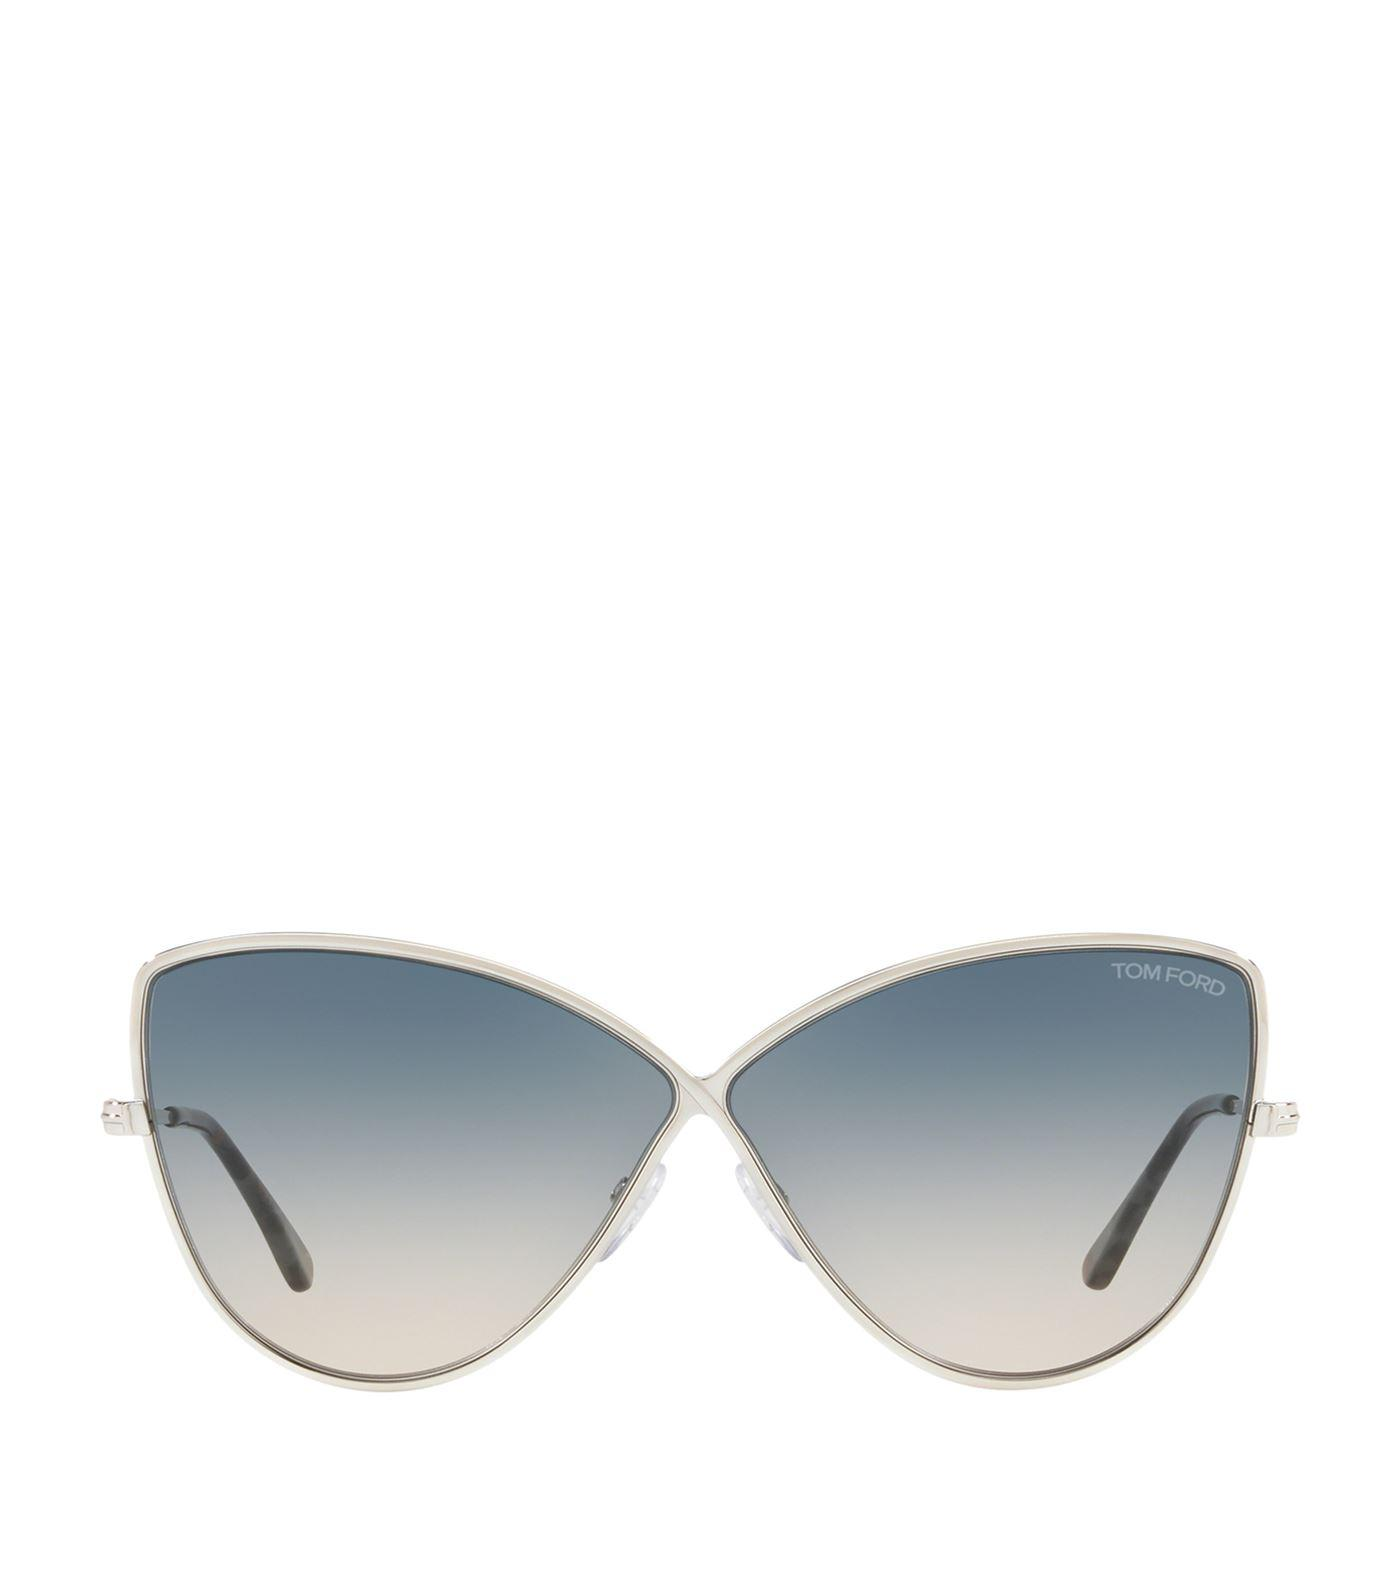 798f20d05c6a Lyst - Tom Ford Elise Sunglasses in Gray